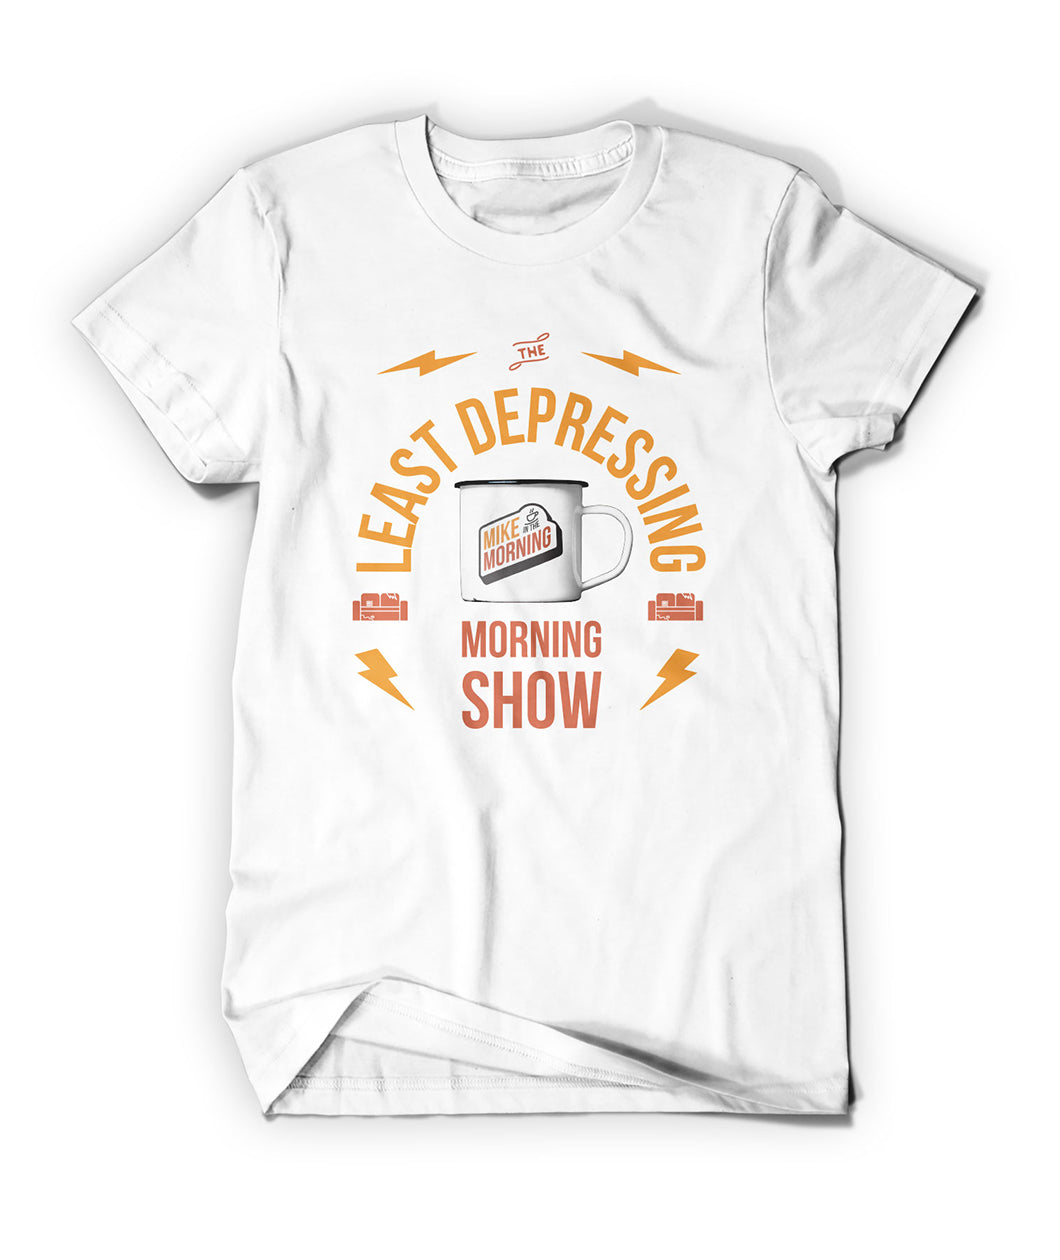 Least Depressing Morning Show Shirt